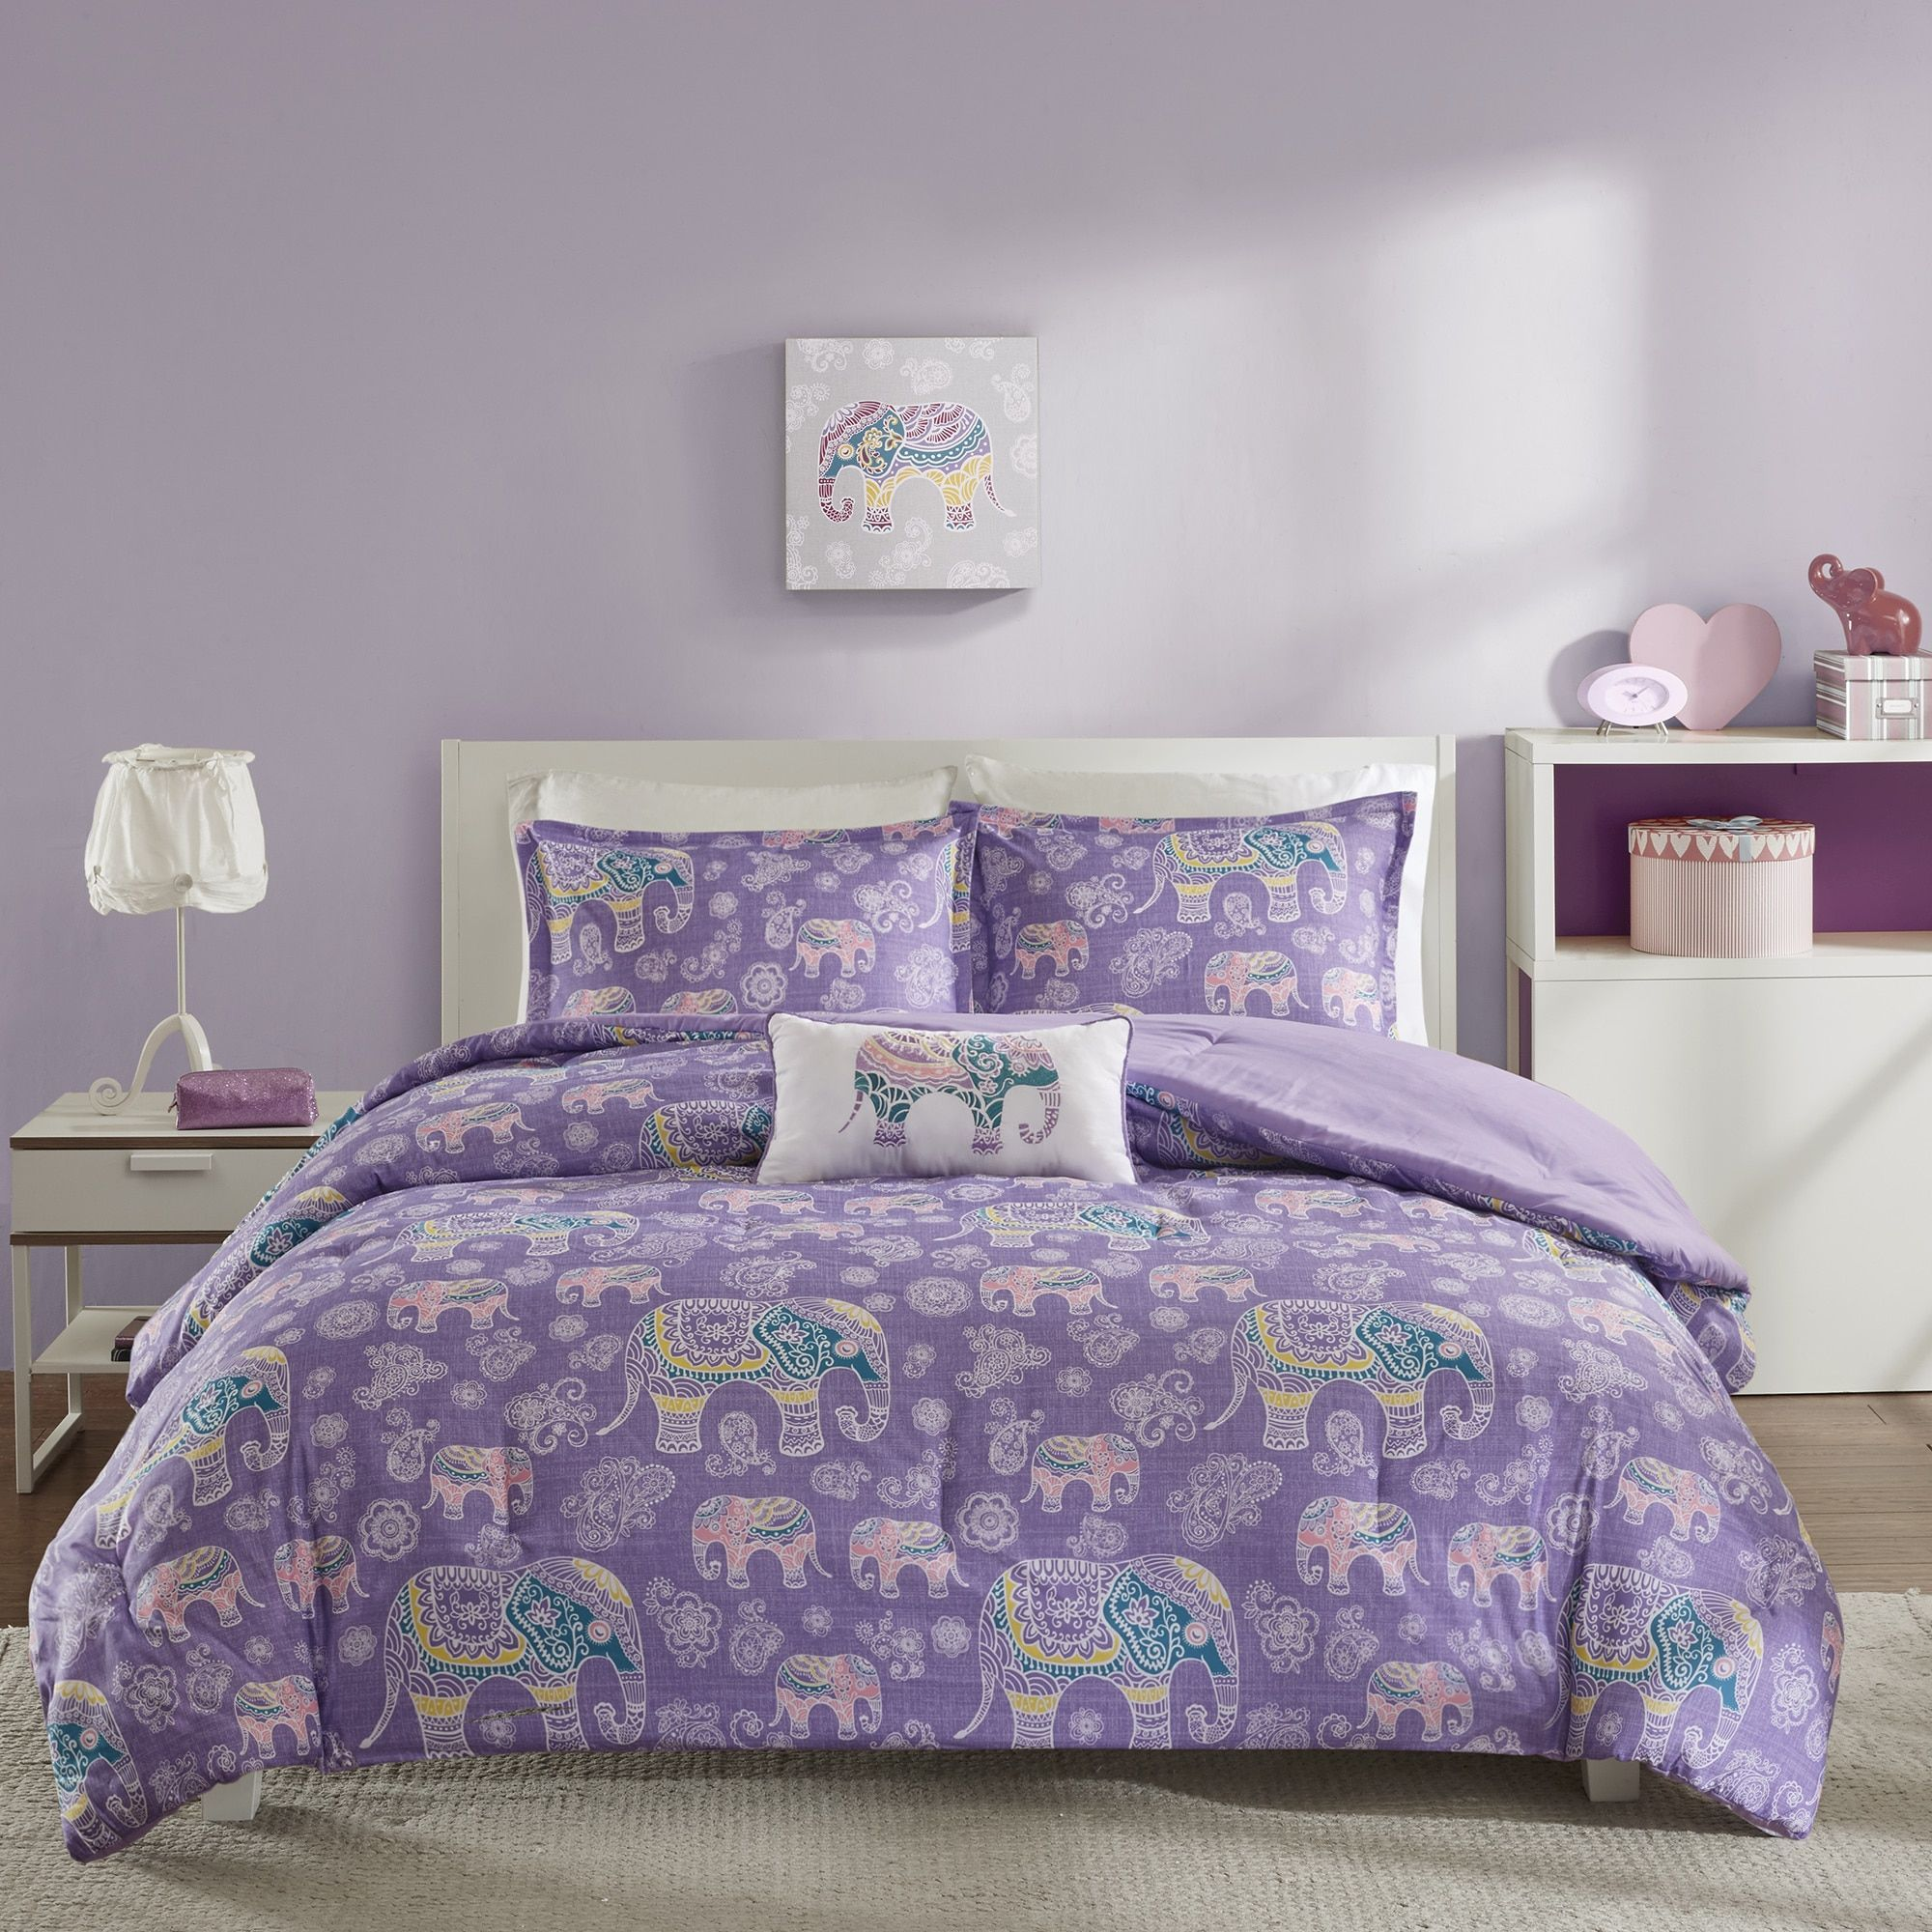 pony jojo twin sweet product overstock set bath bedding pretty today shipping free girls designs comforter piece